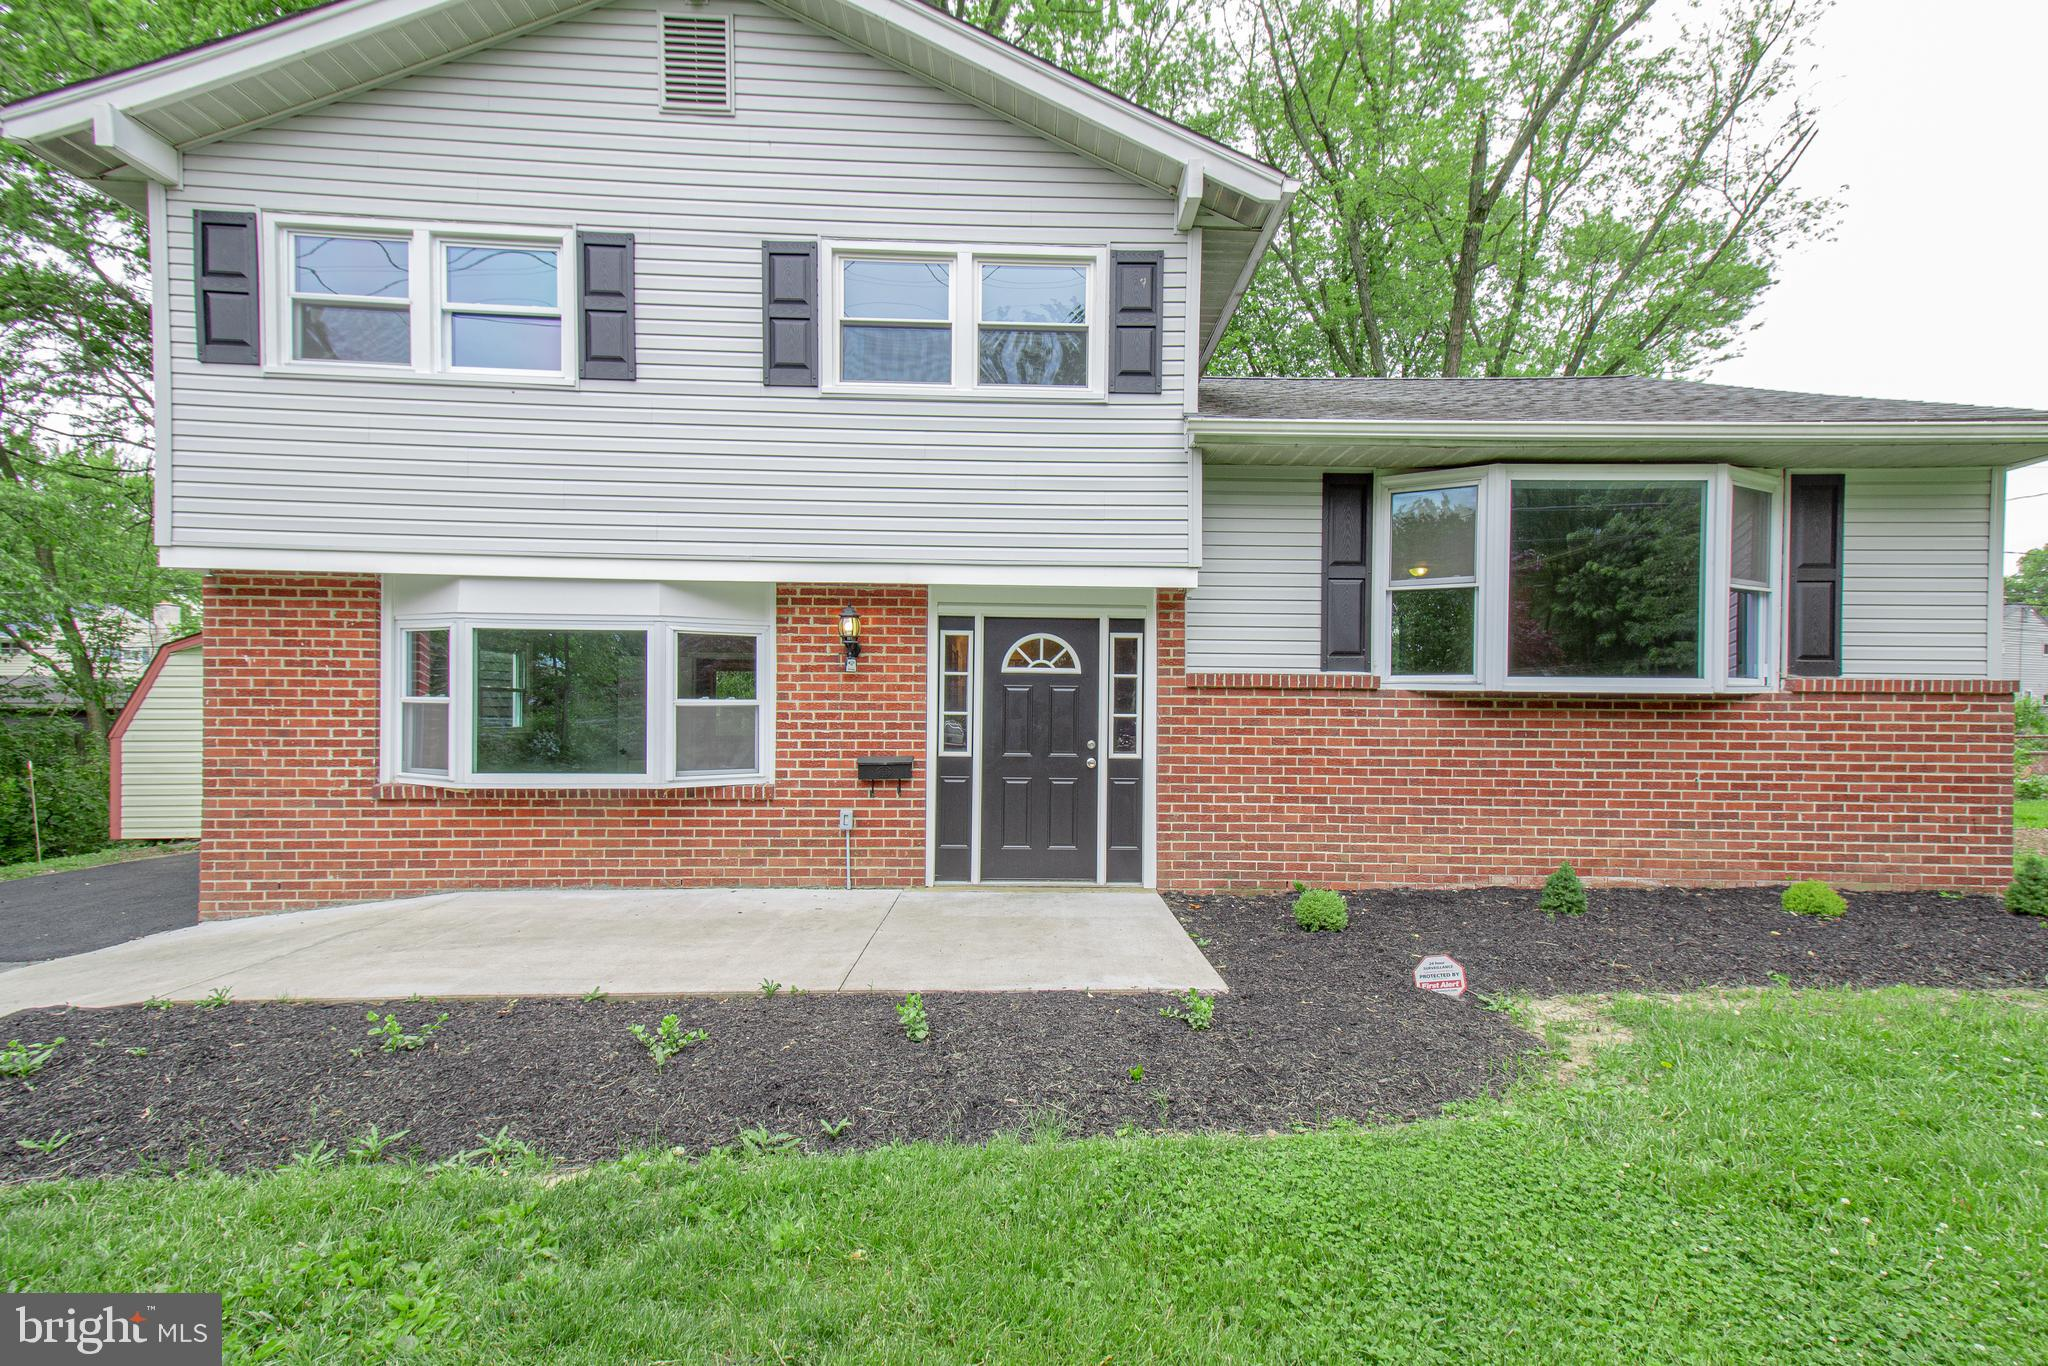 Quality describes this beautifully remodeled 4 bedroom 2 full bathroom home located in the popular A